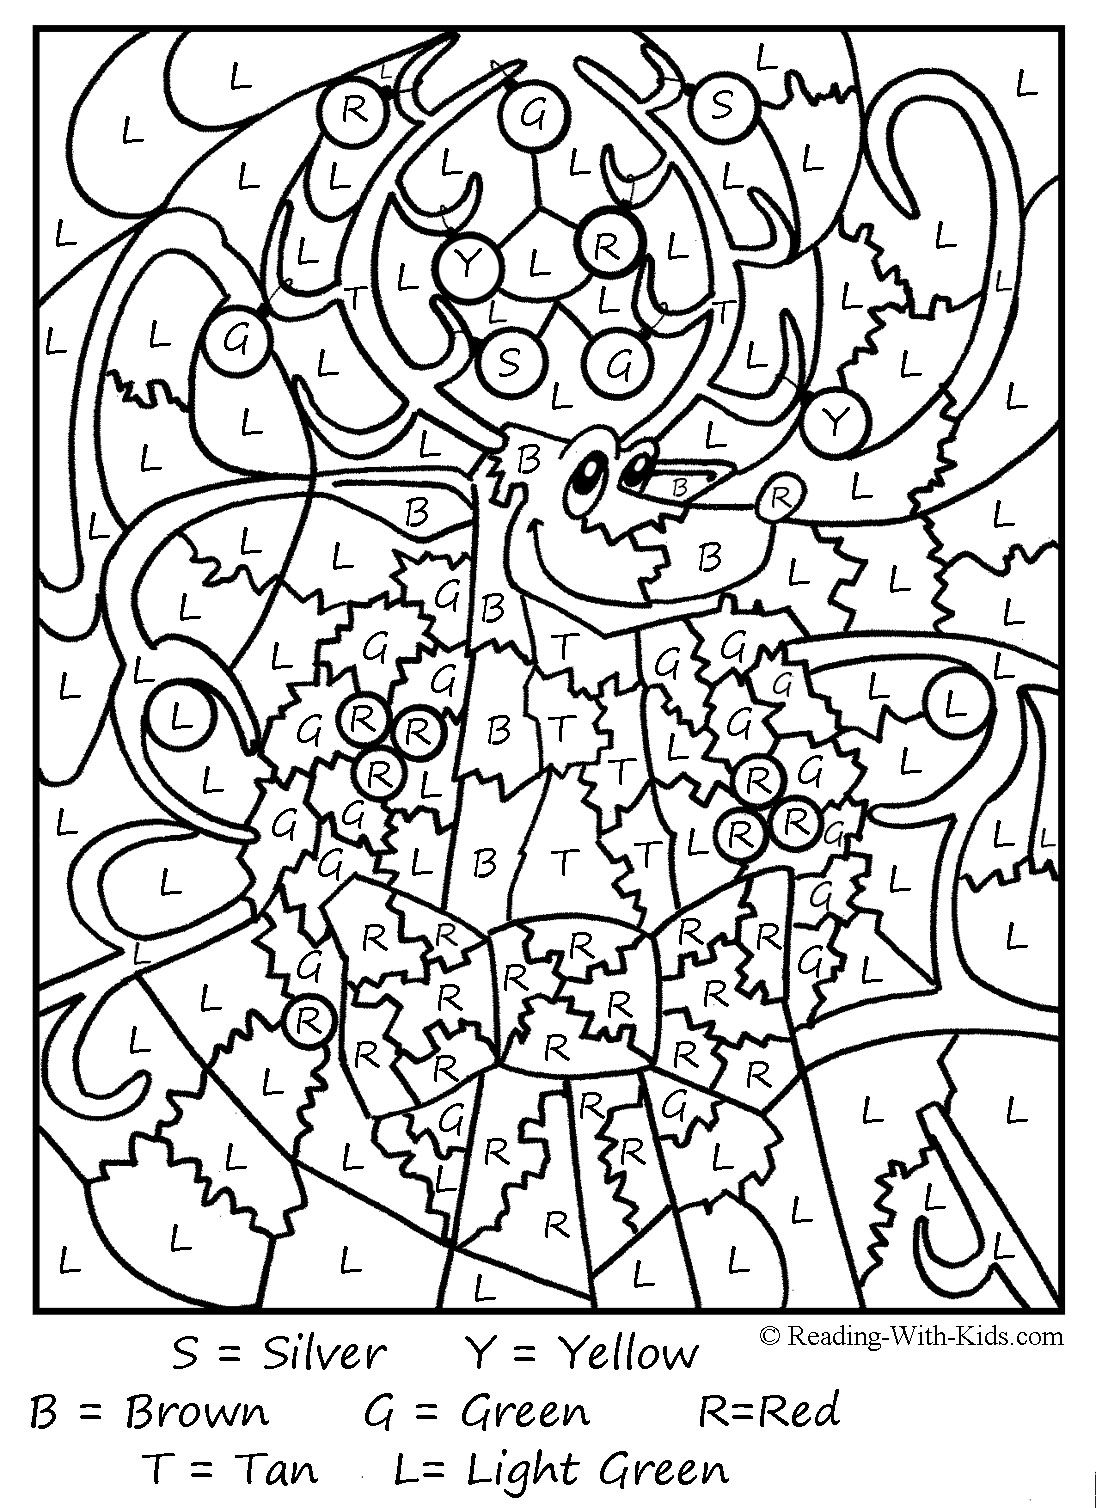 Christmas Coloring And Activity Sheets With Hundreds Of Free Printable Xmas Pages